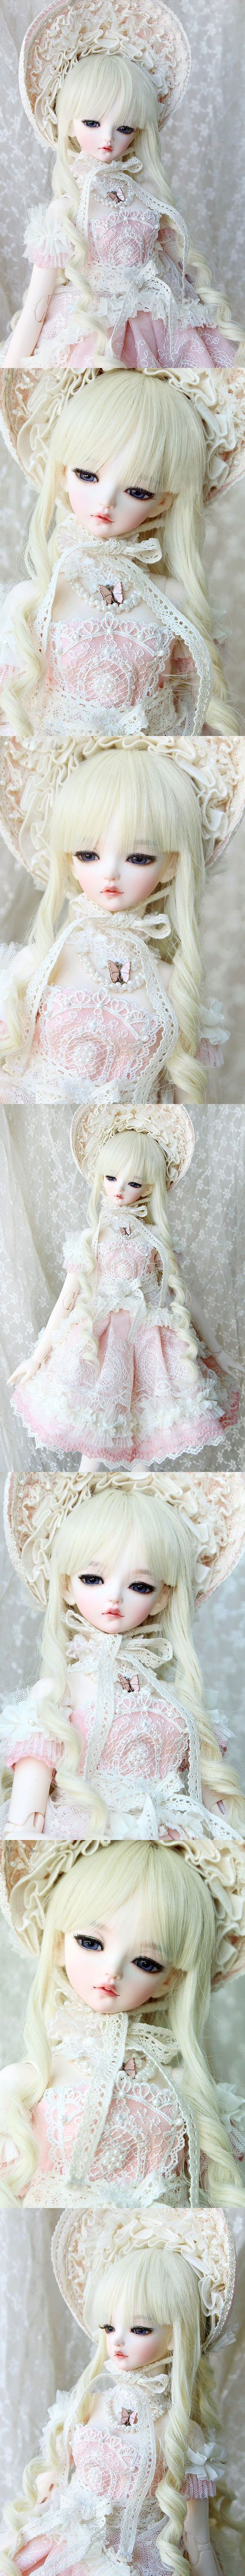 BJD Cordelia 60cm Girl Ball-jointed Doll_Limited dolls_ASLEEP EIDOLON_DOLL_Ball Jointed Dolls (BJD) company-Legenddoll